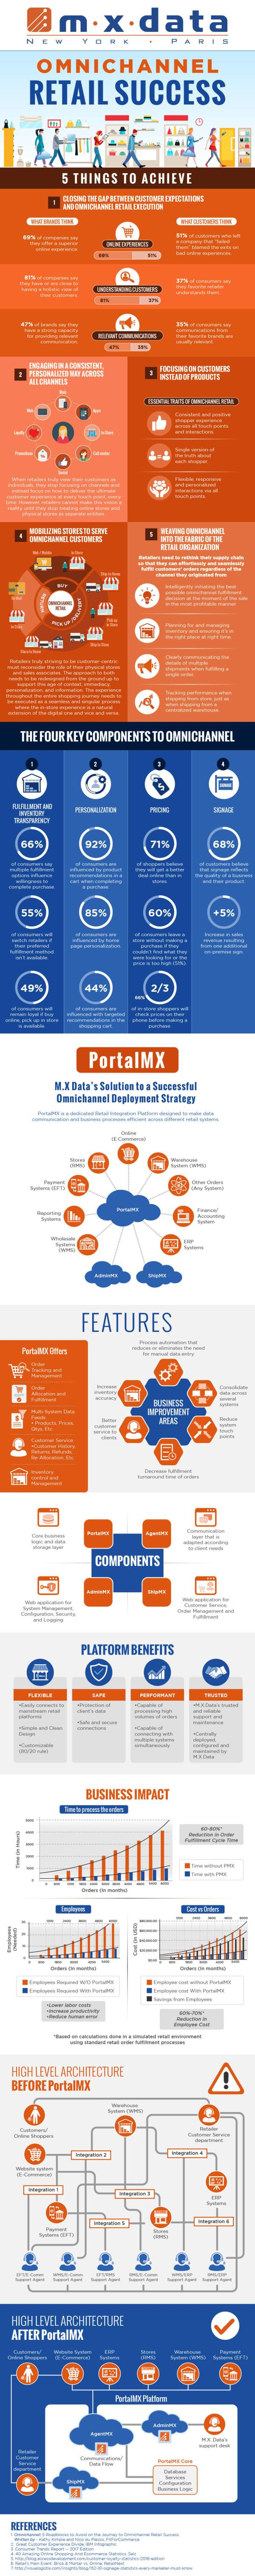 Guide-To-Omnichannel-Retail-Success-Infographic